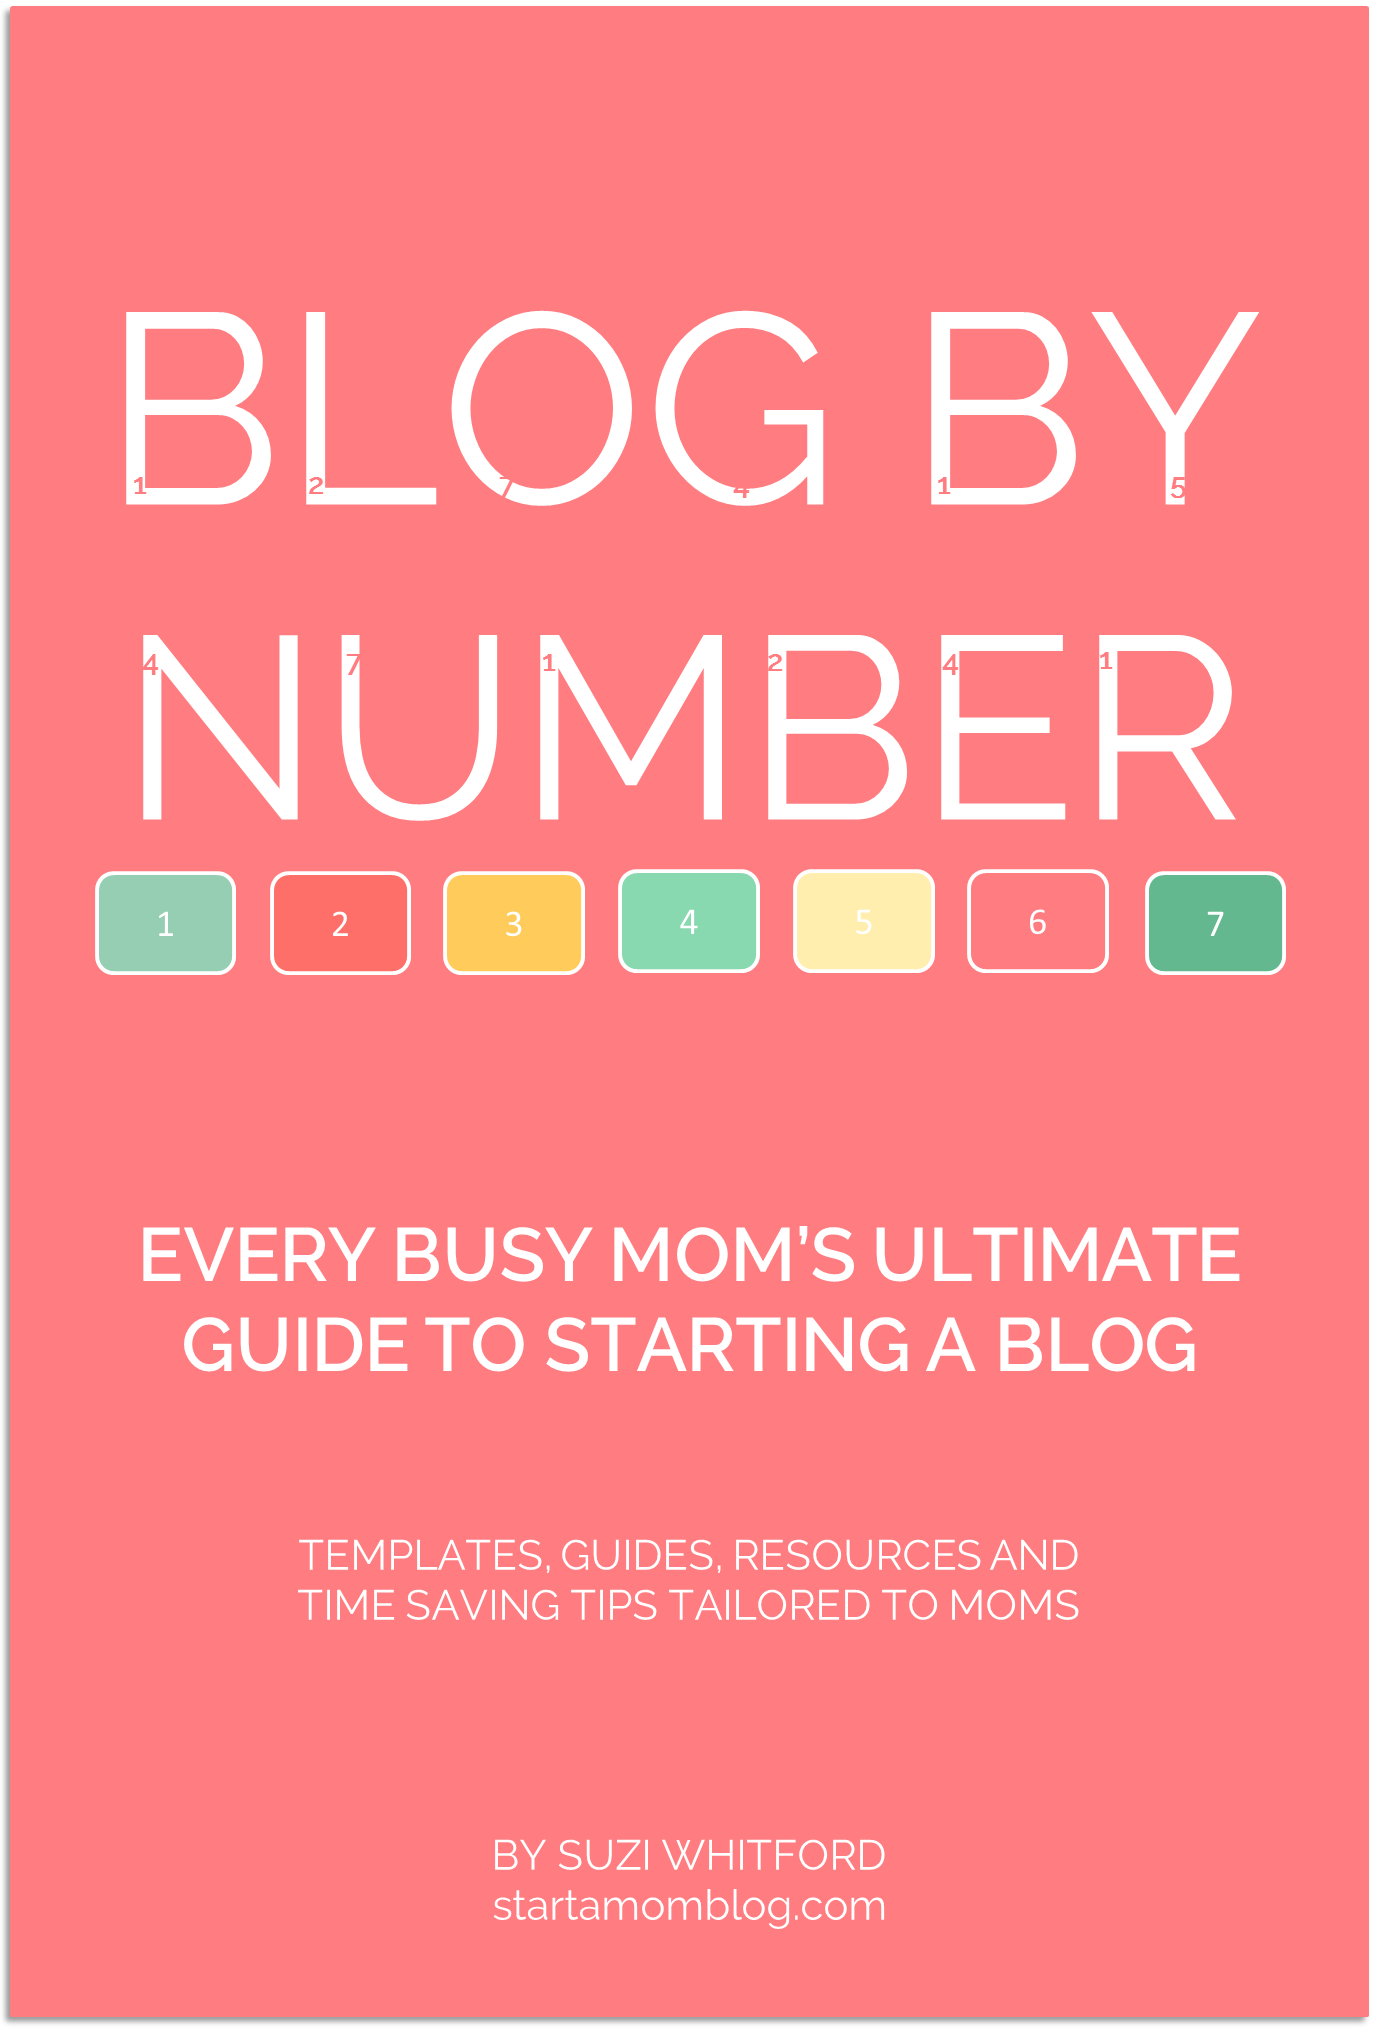 Blog by number-momblogfromhome